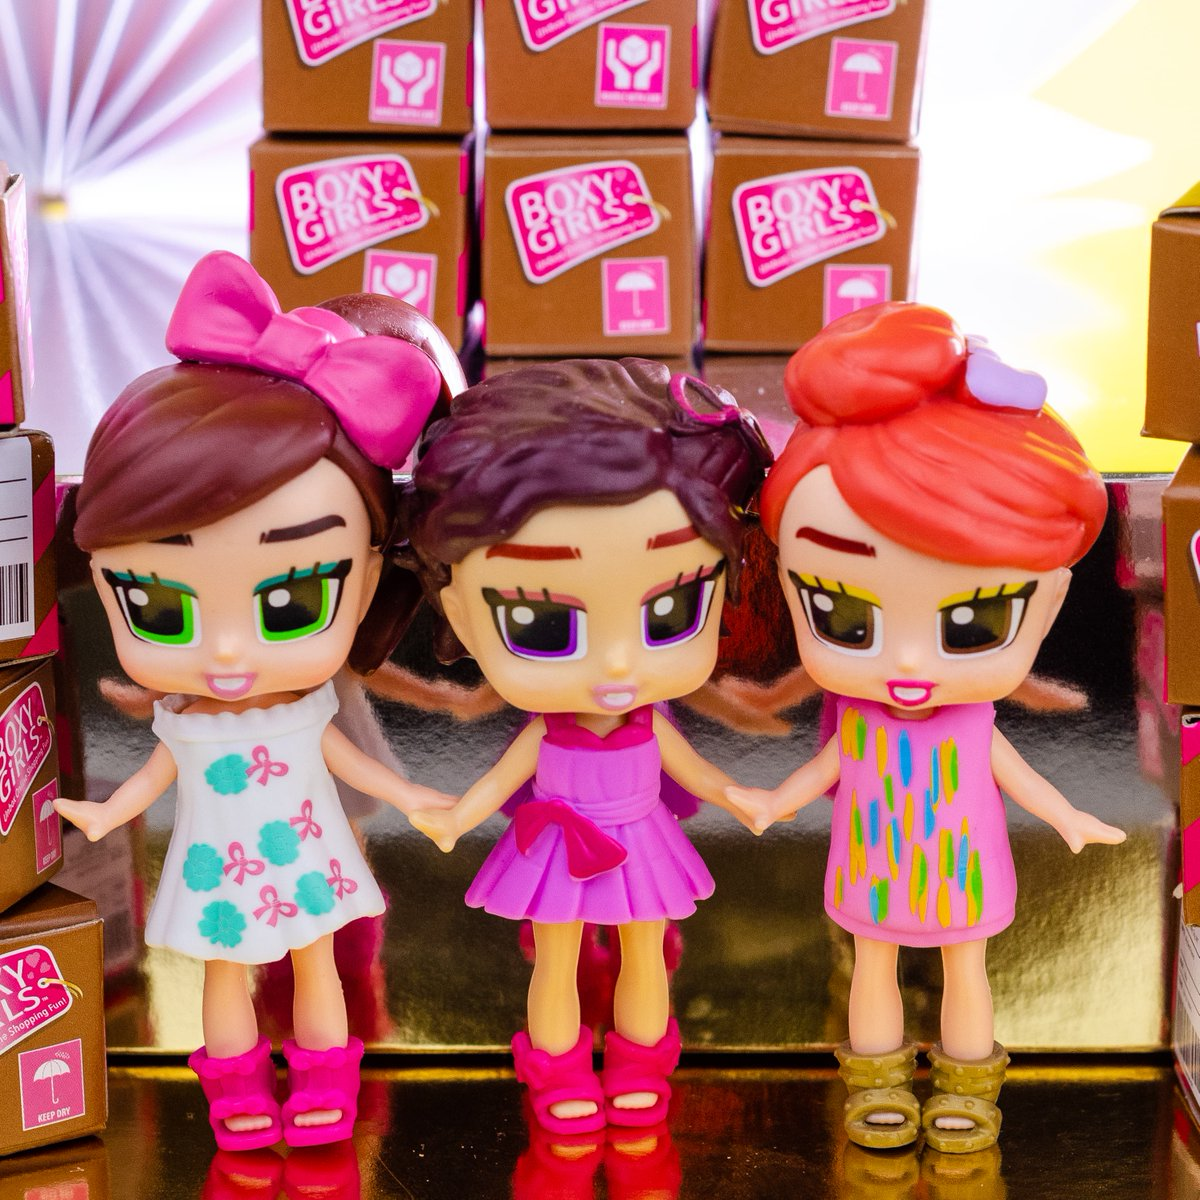 boxy girls mini dolls